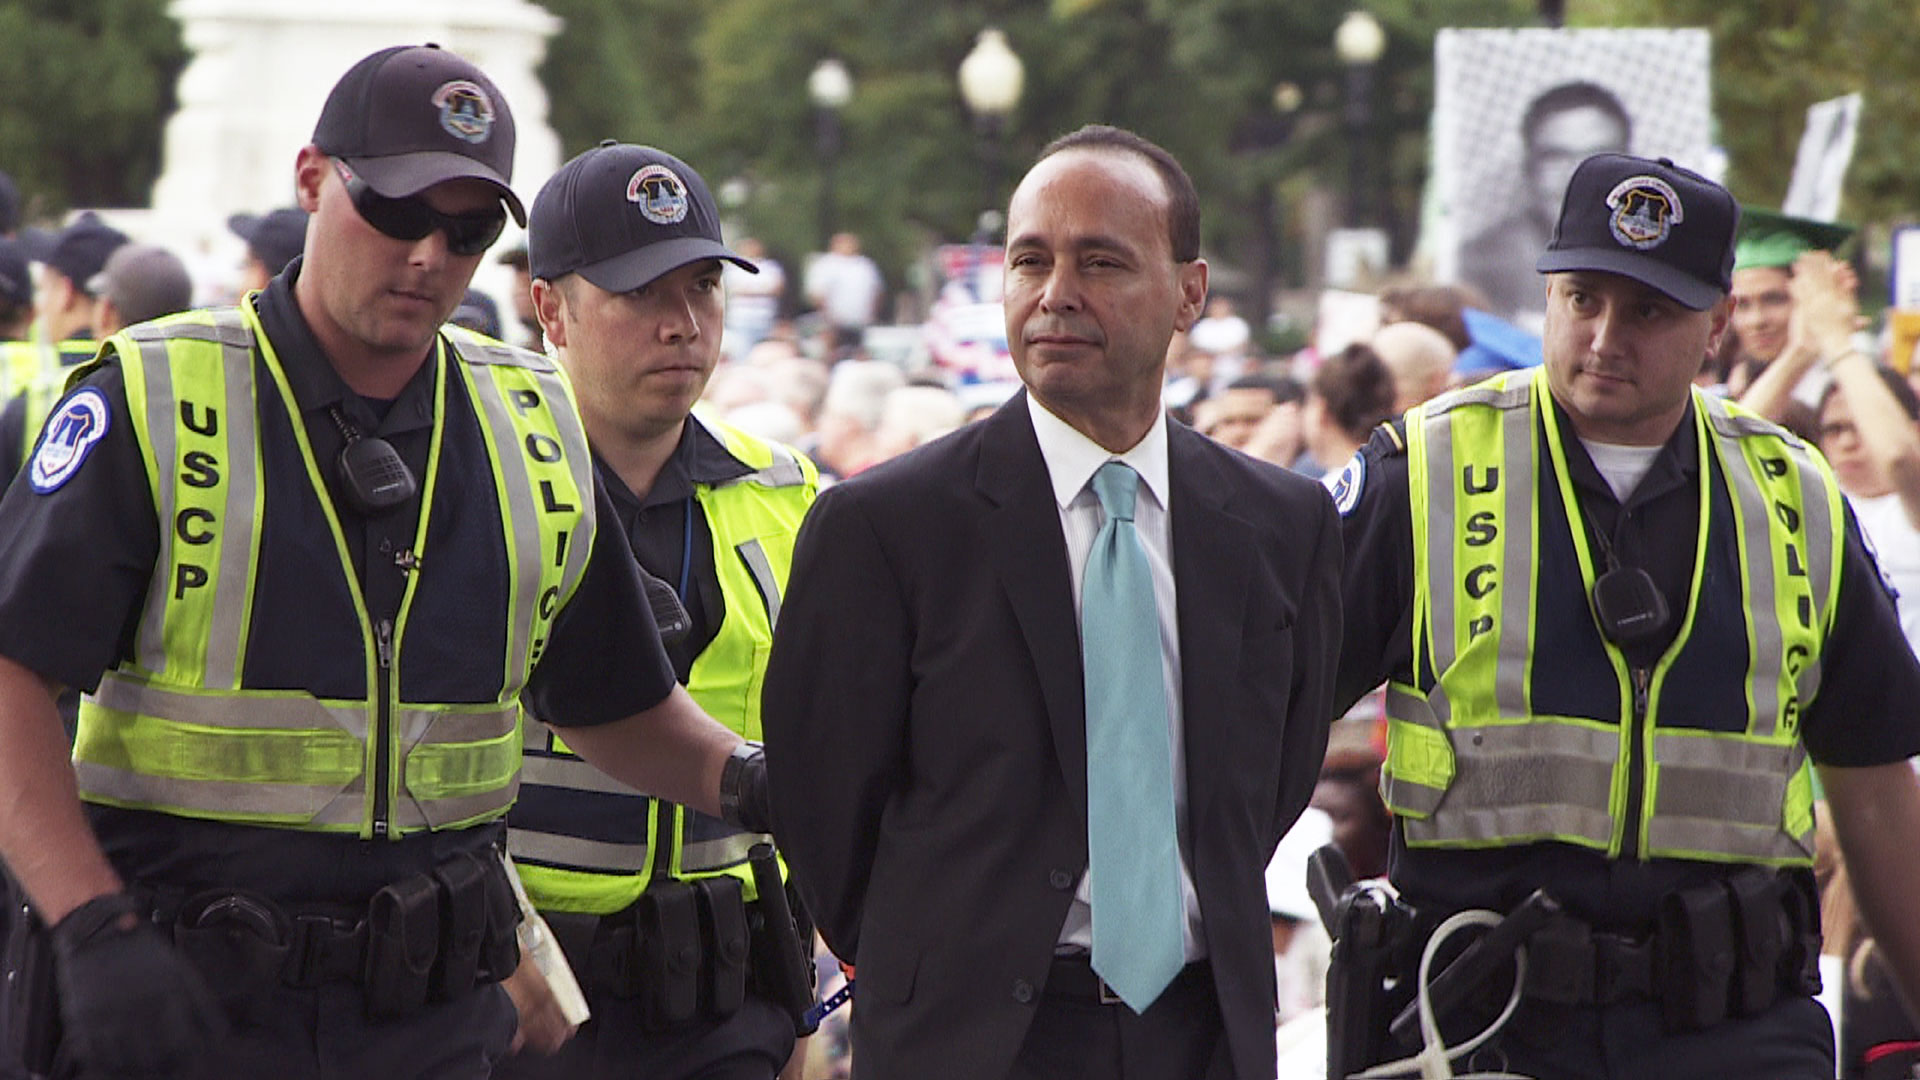 Deportation Constant Fear For >> Rep. Luis Gutierrez Gets Arrested in This Documentary